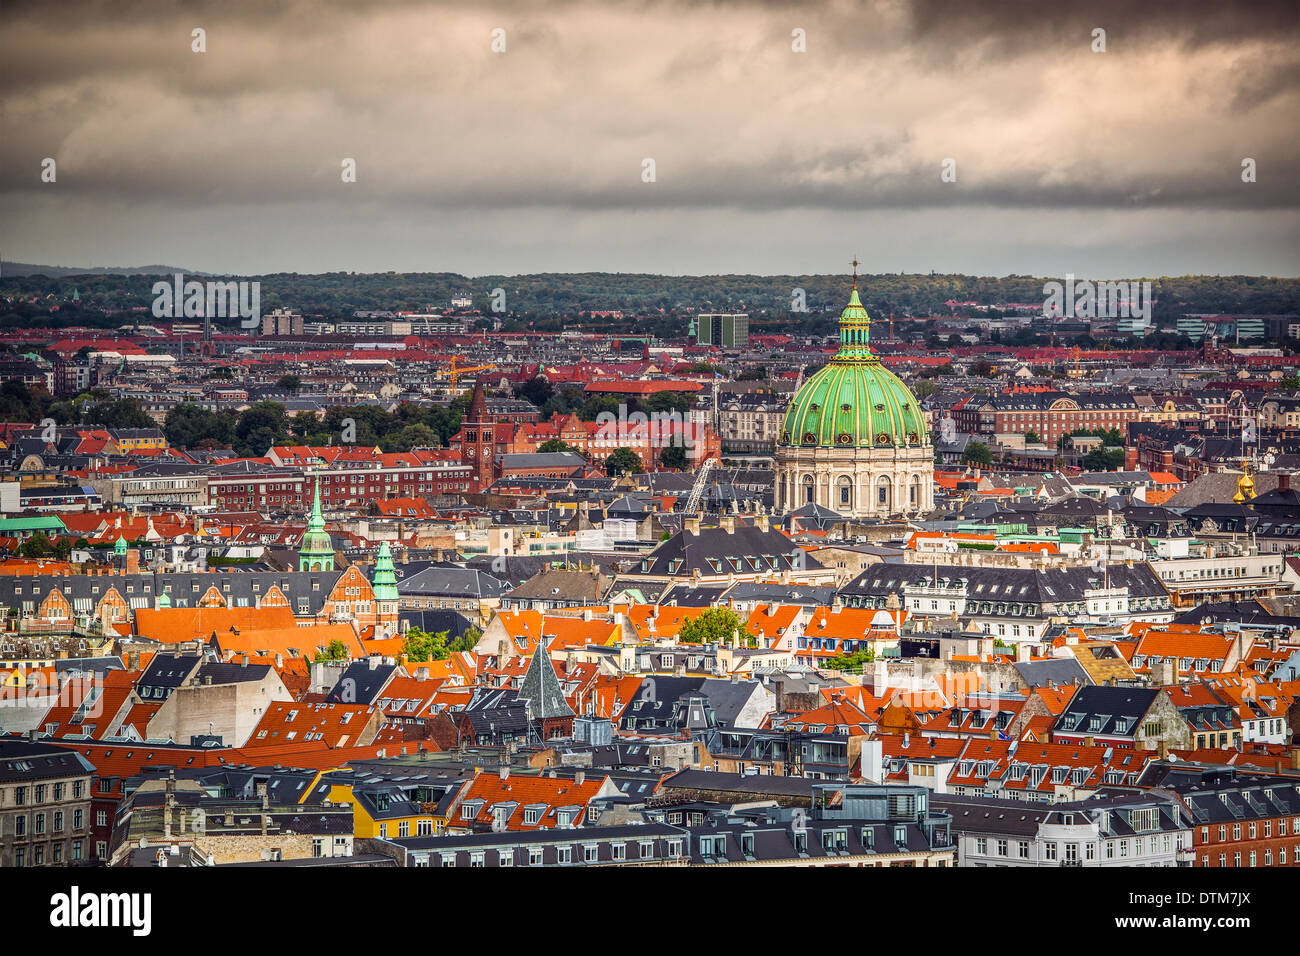 Copenhagen, Denmark cityscape at the Marble Church. - Stock Image